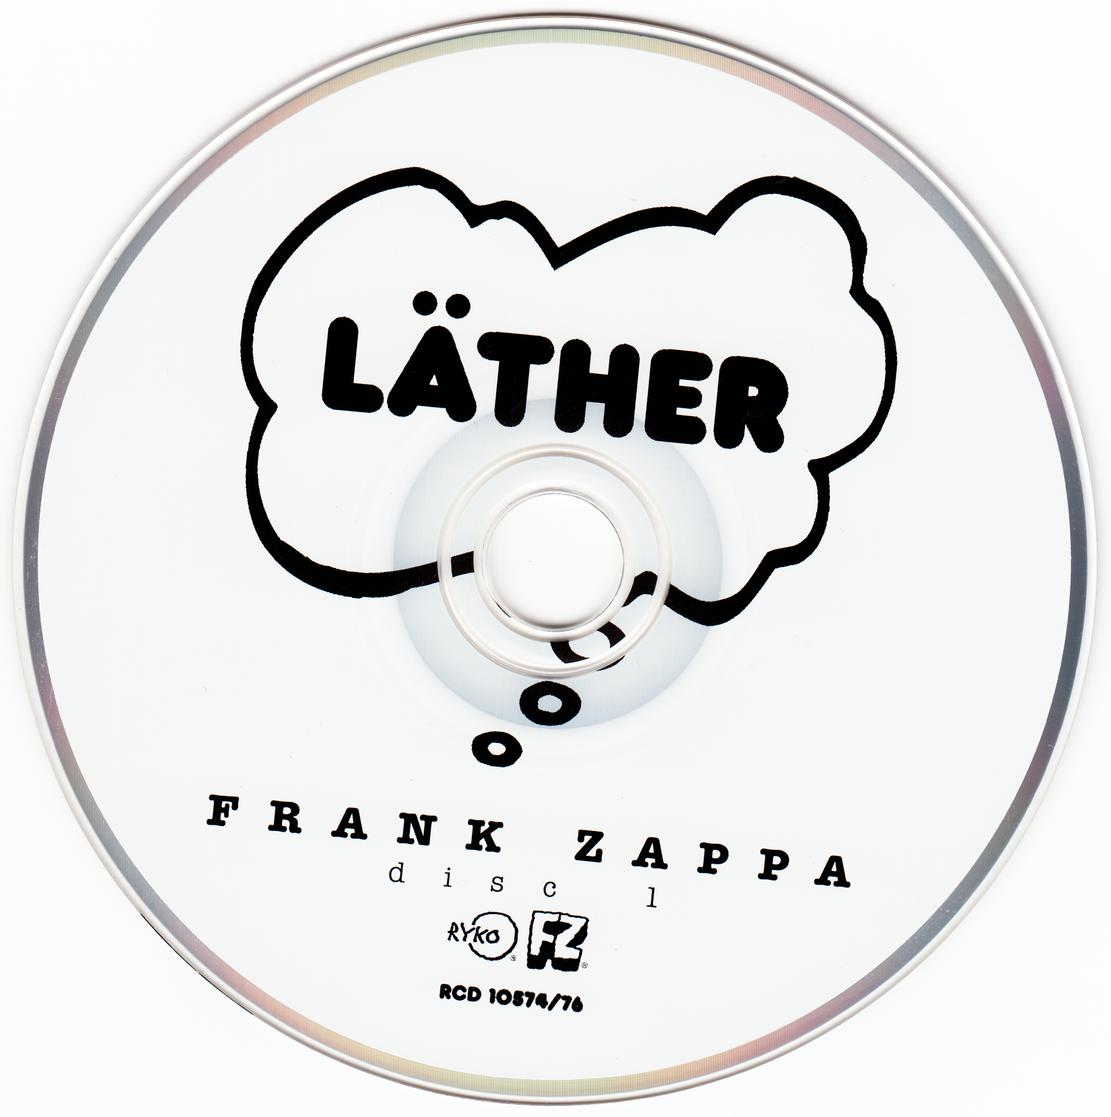 Frank Zappa Lather 1996 3cd Set Rykodisc Rcd10574 76